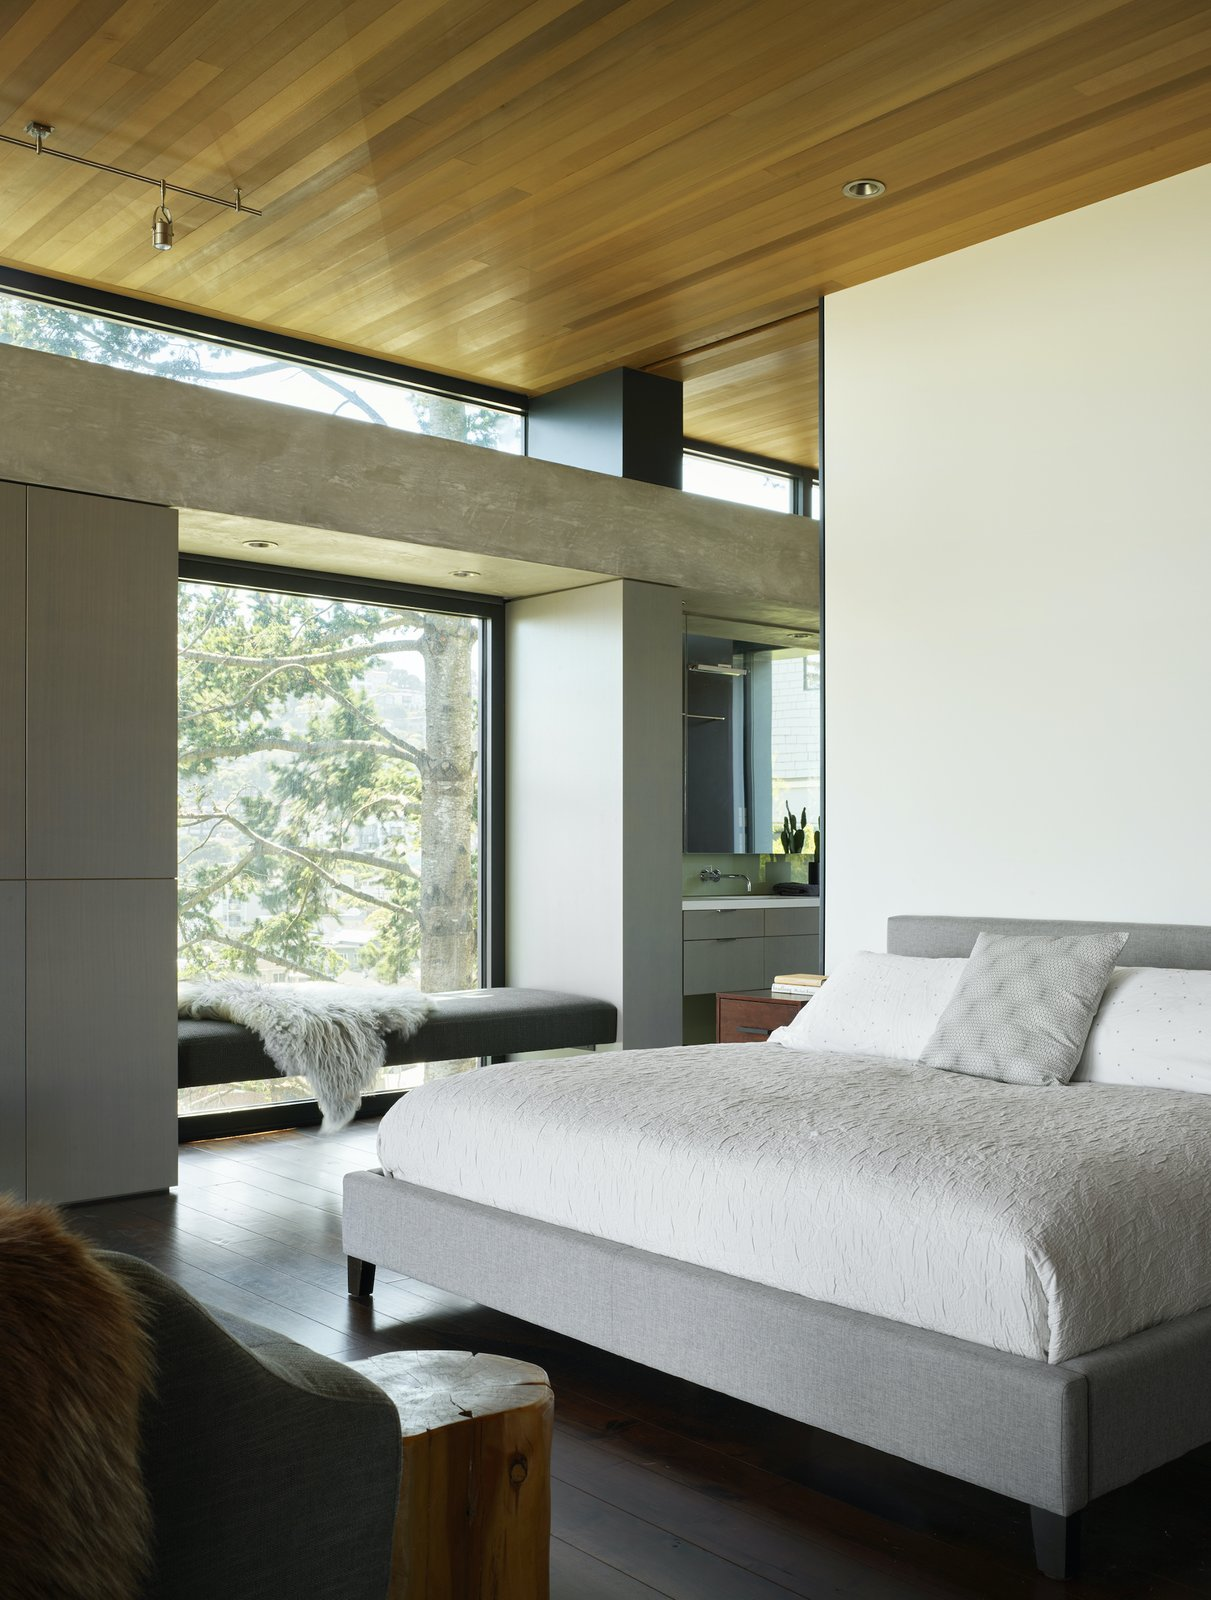 Bedroom at Terrace House by Aidlin Darling Design.